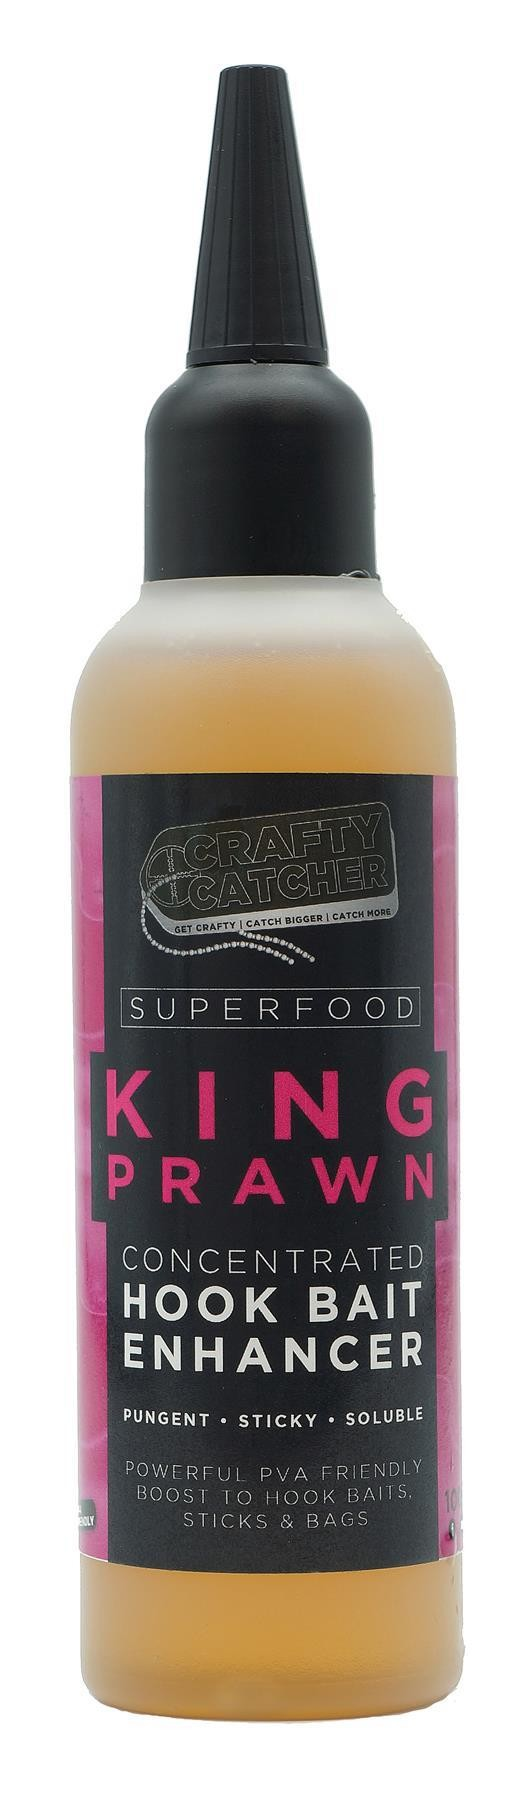 Crafty Catcher Superfood King Prawn Concentrated Hookbait Enhancer 100ml Carp Fishing Bait